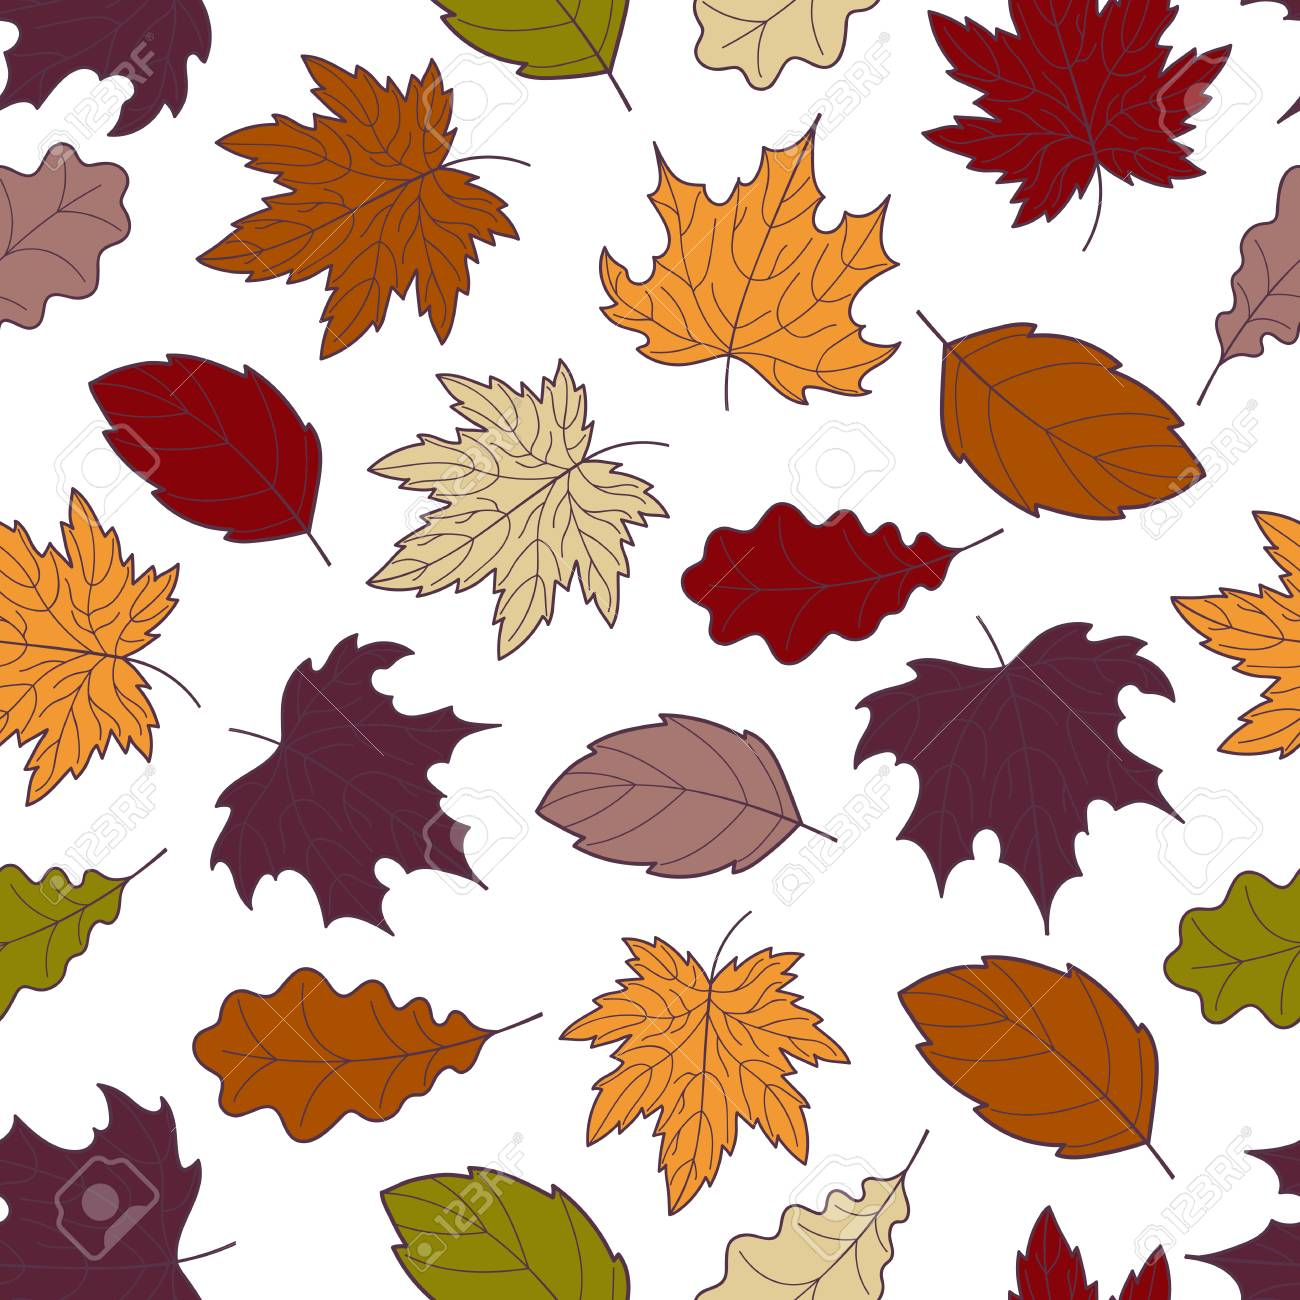 Doodle Autumn Leaves Seamless Pattern Vector Hand Drawn Fall